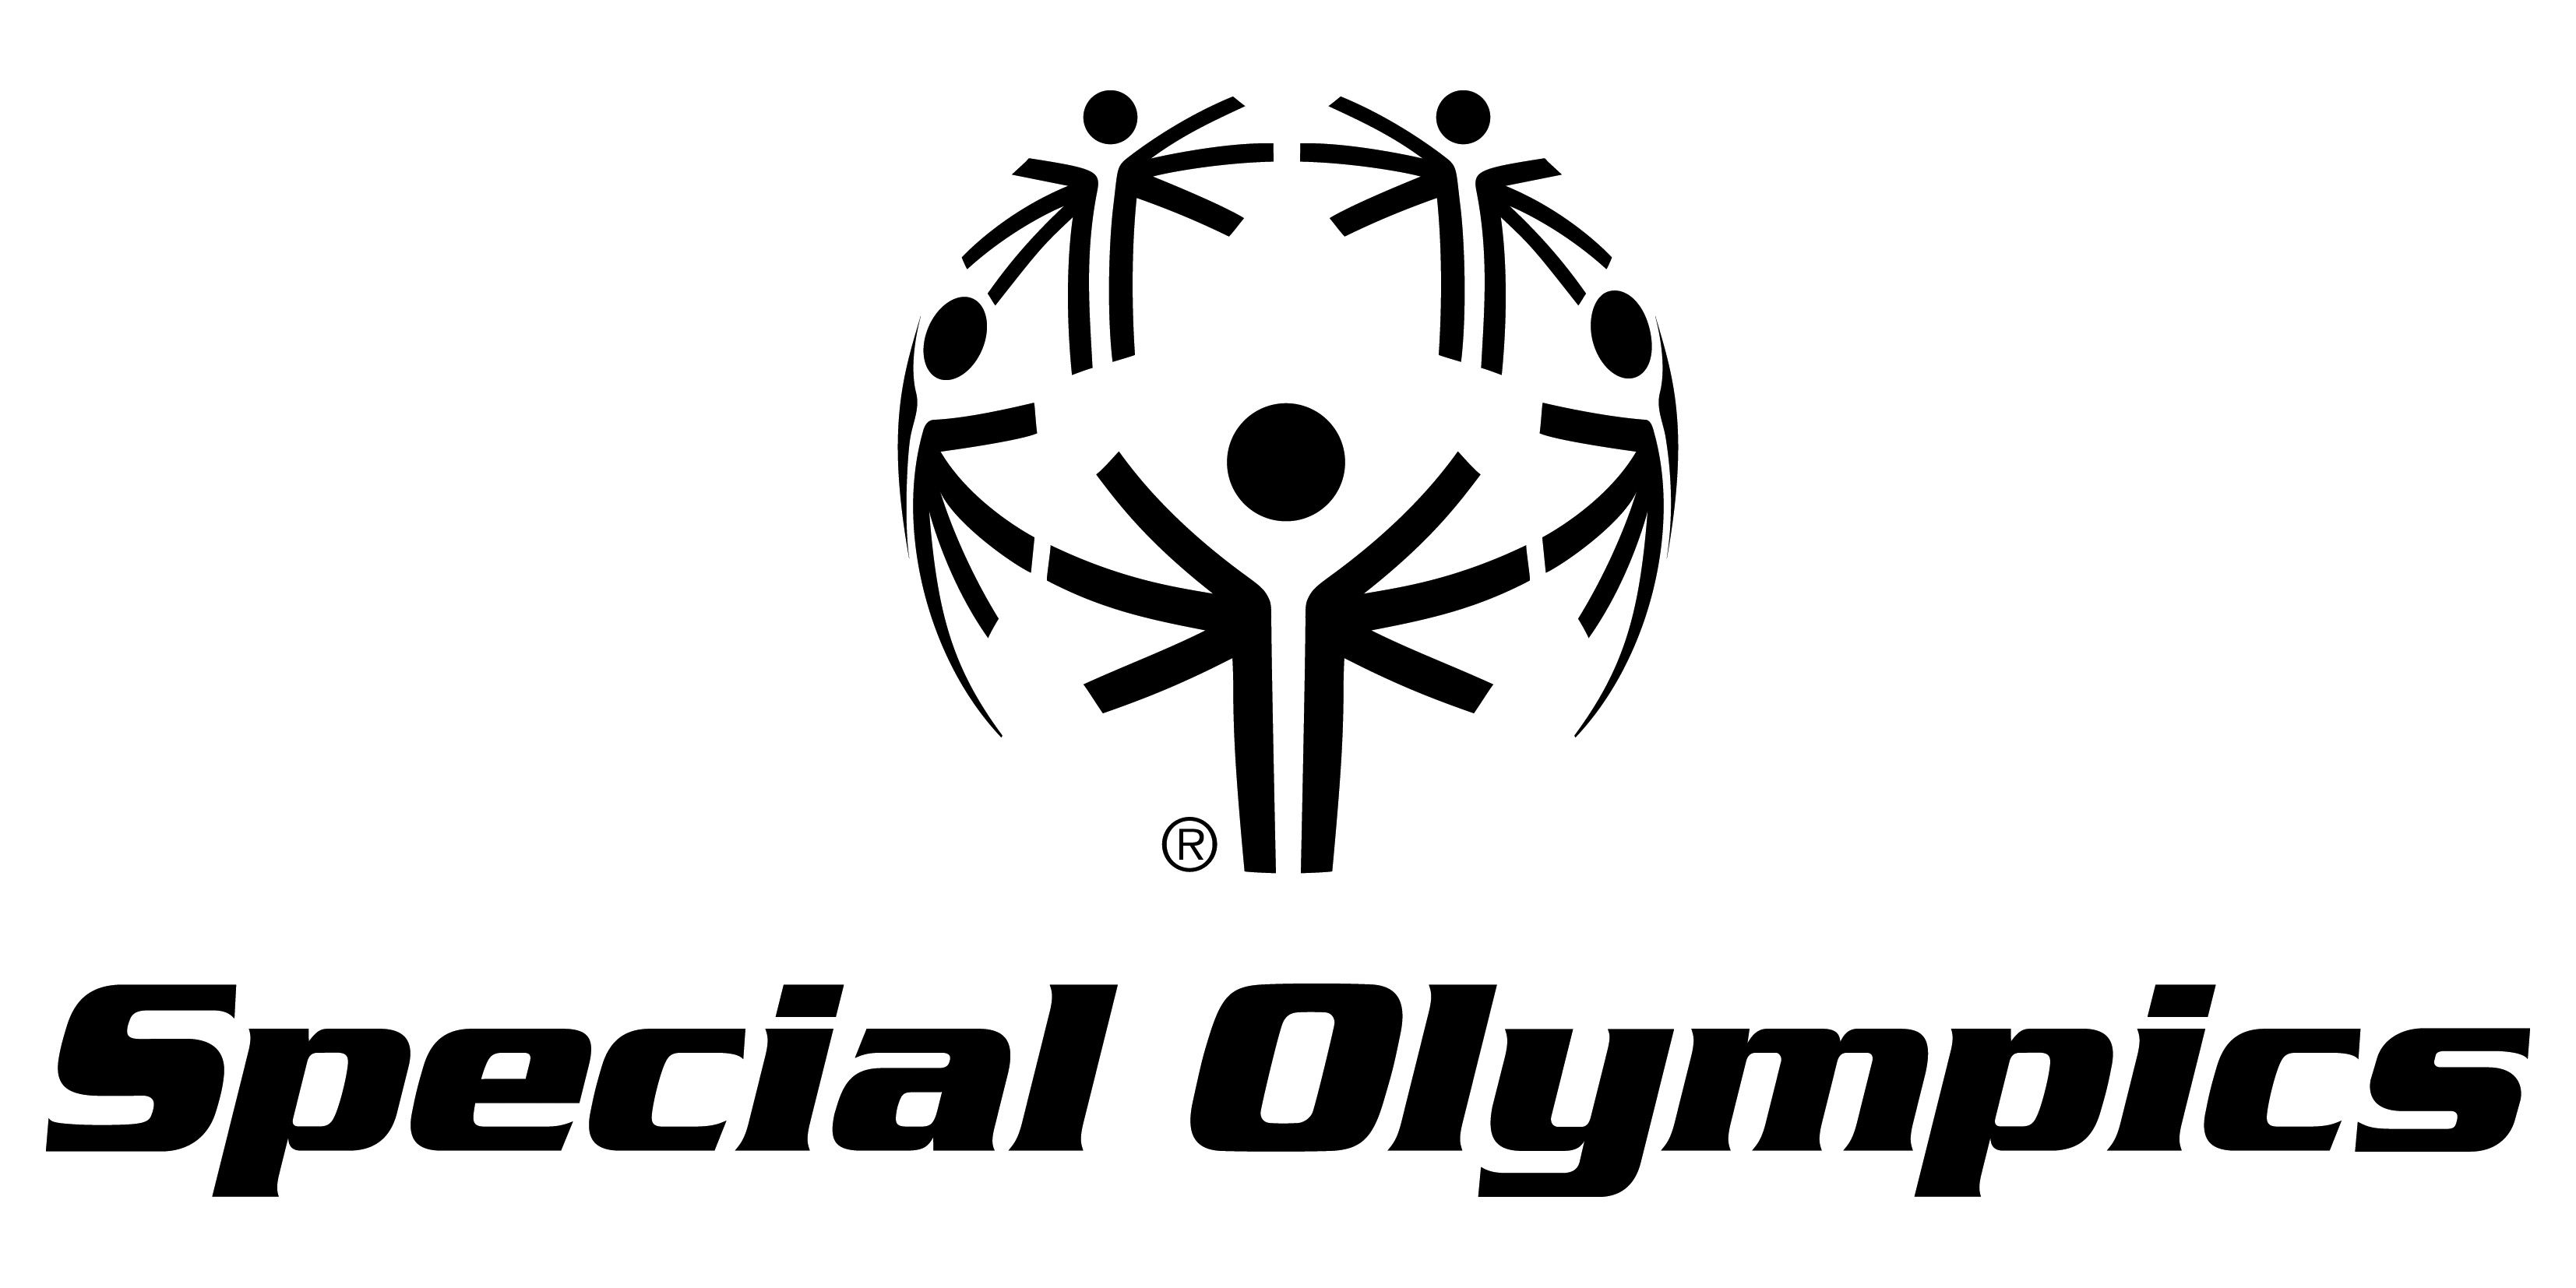 I coached Special Olympics for seven years.The strength